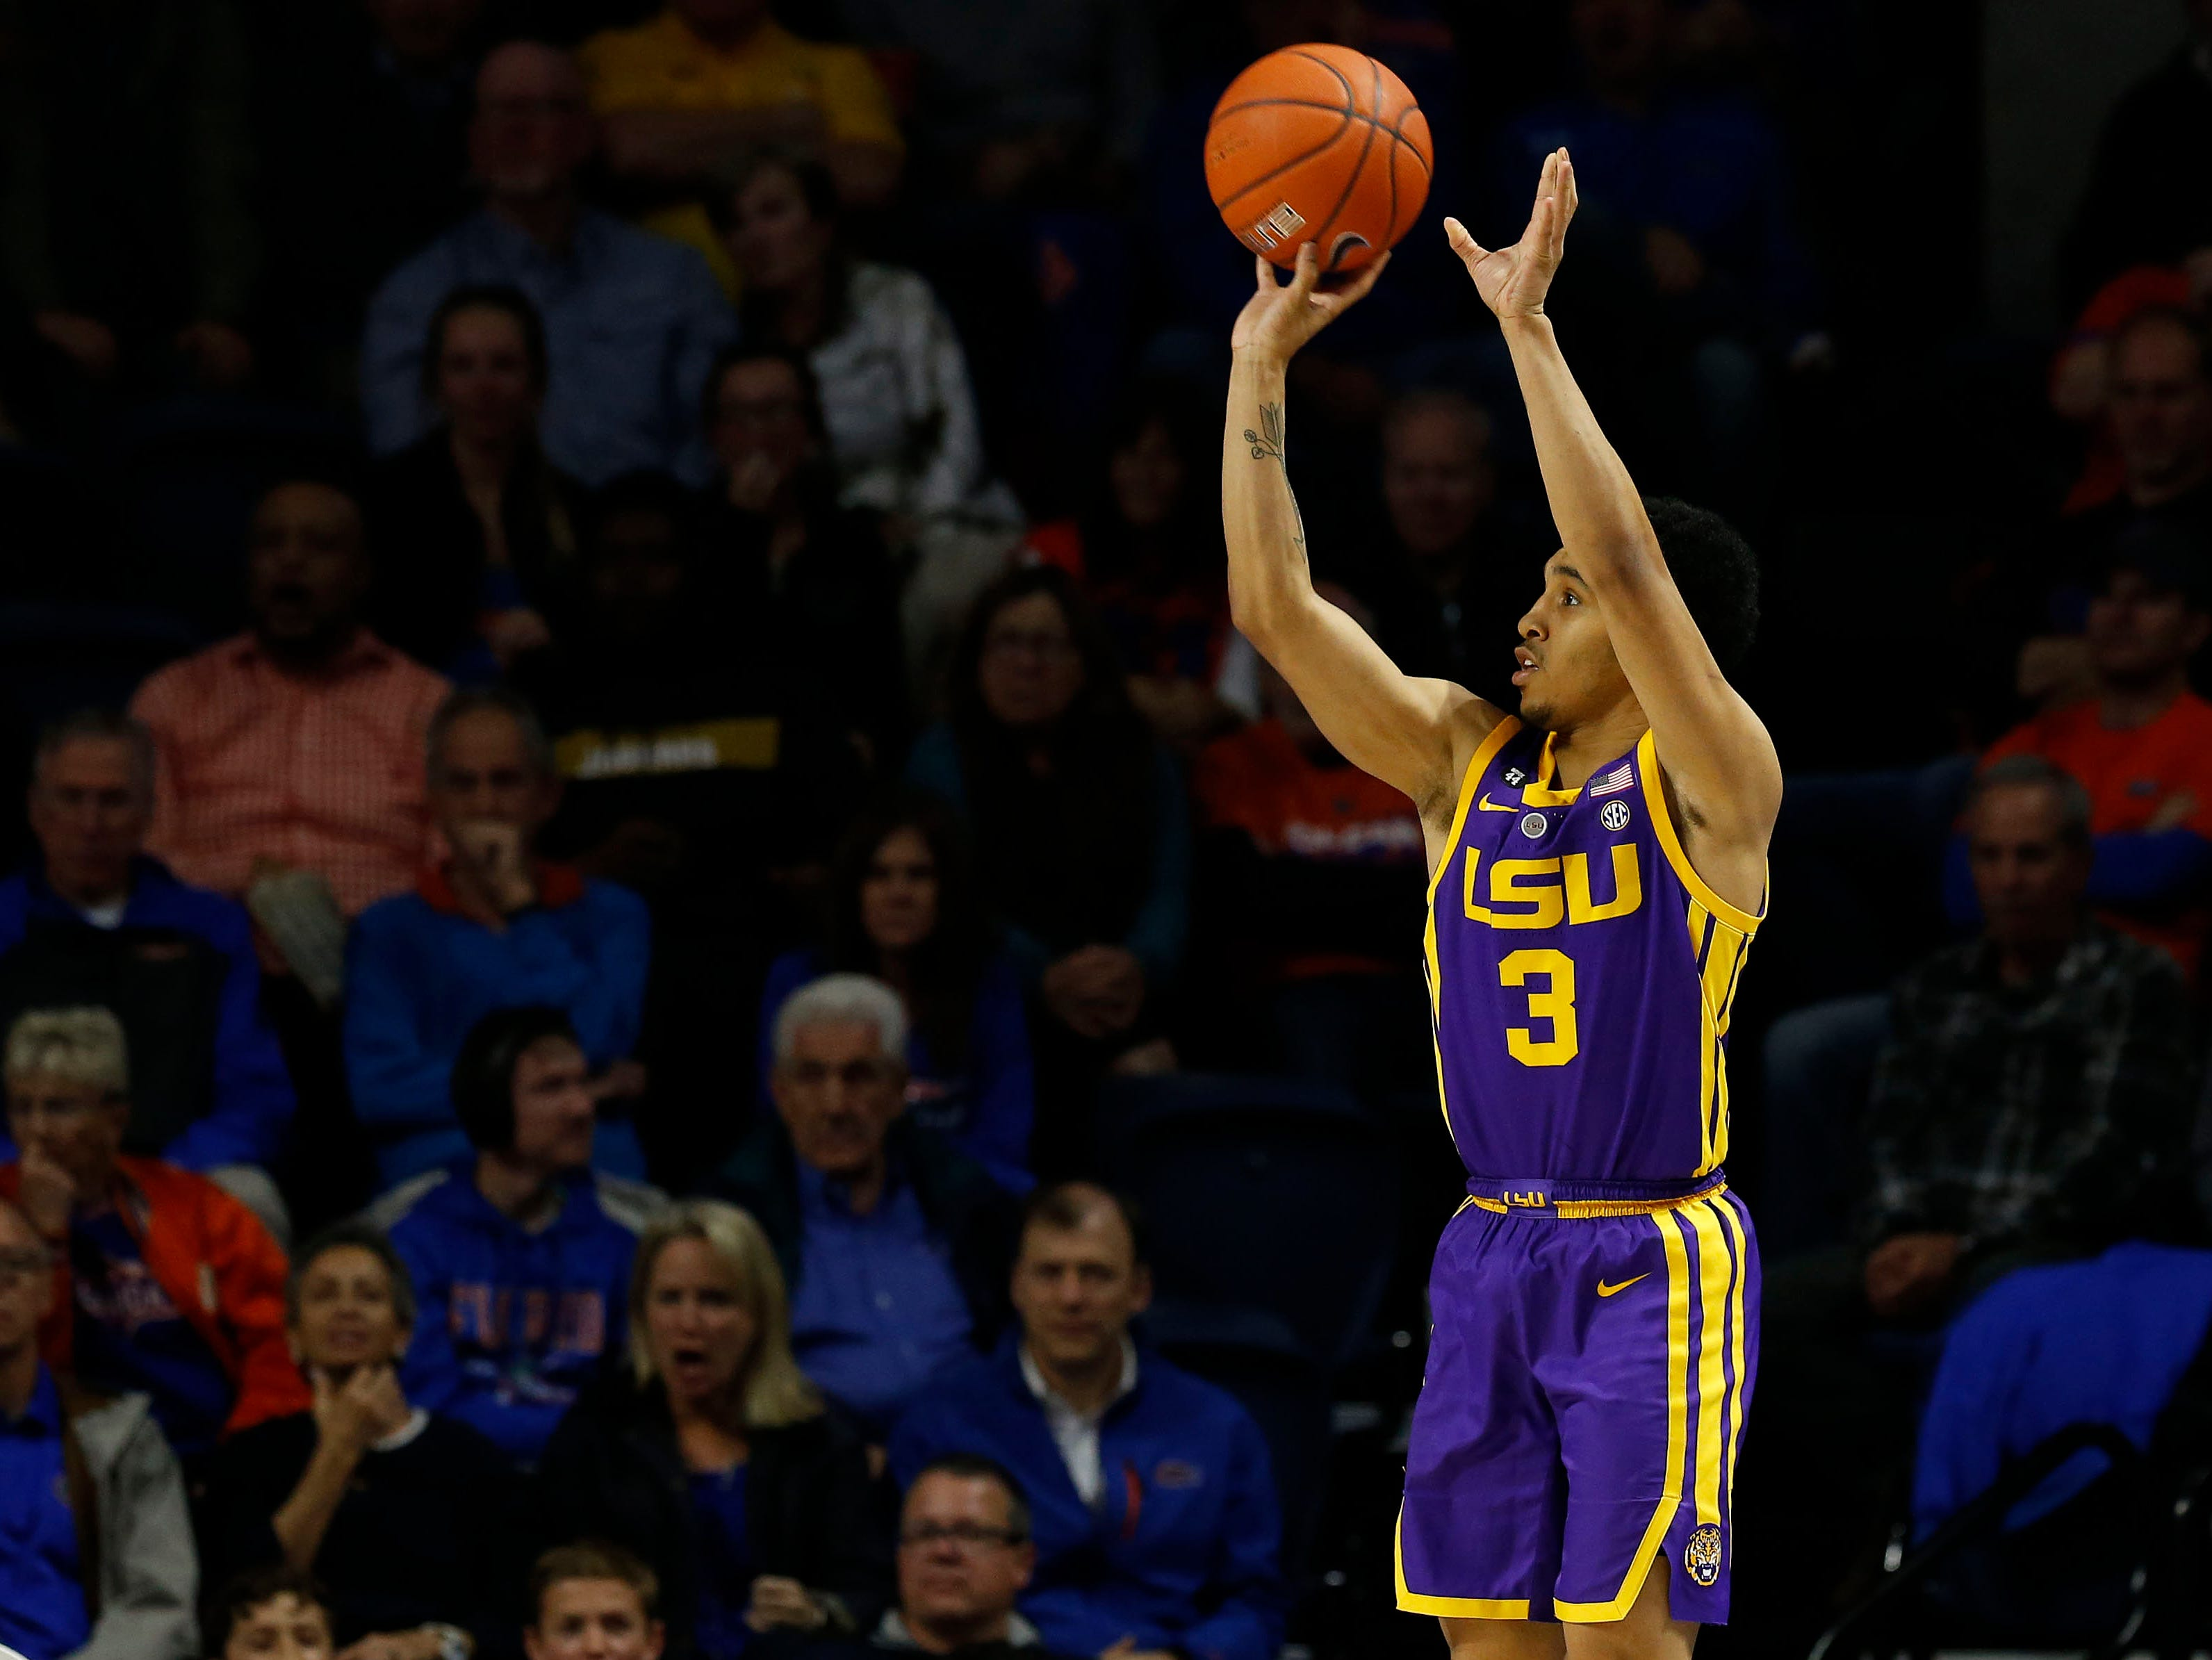 Mar 6, 2019; Gainesville, FL, USA; LSU Tigers guard Tremont Waters (3) shoots the ball against the Florida Gators during the second half at Exactech Arena. Mandatory Credit: Kim Klement-USA TODAY Sports